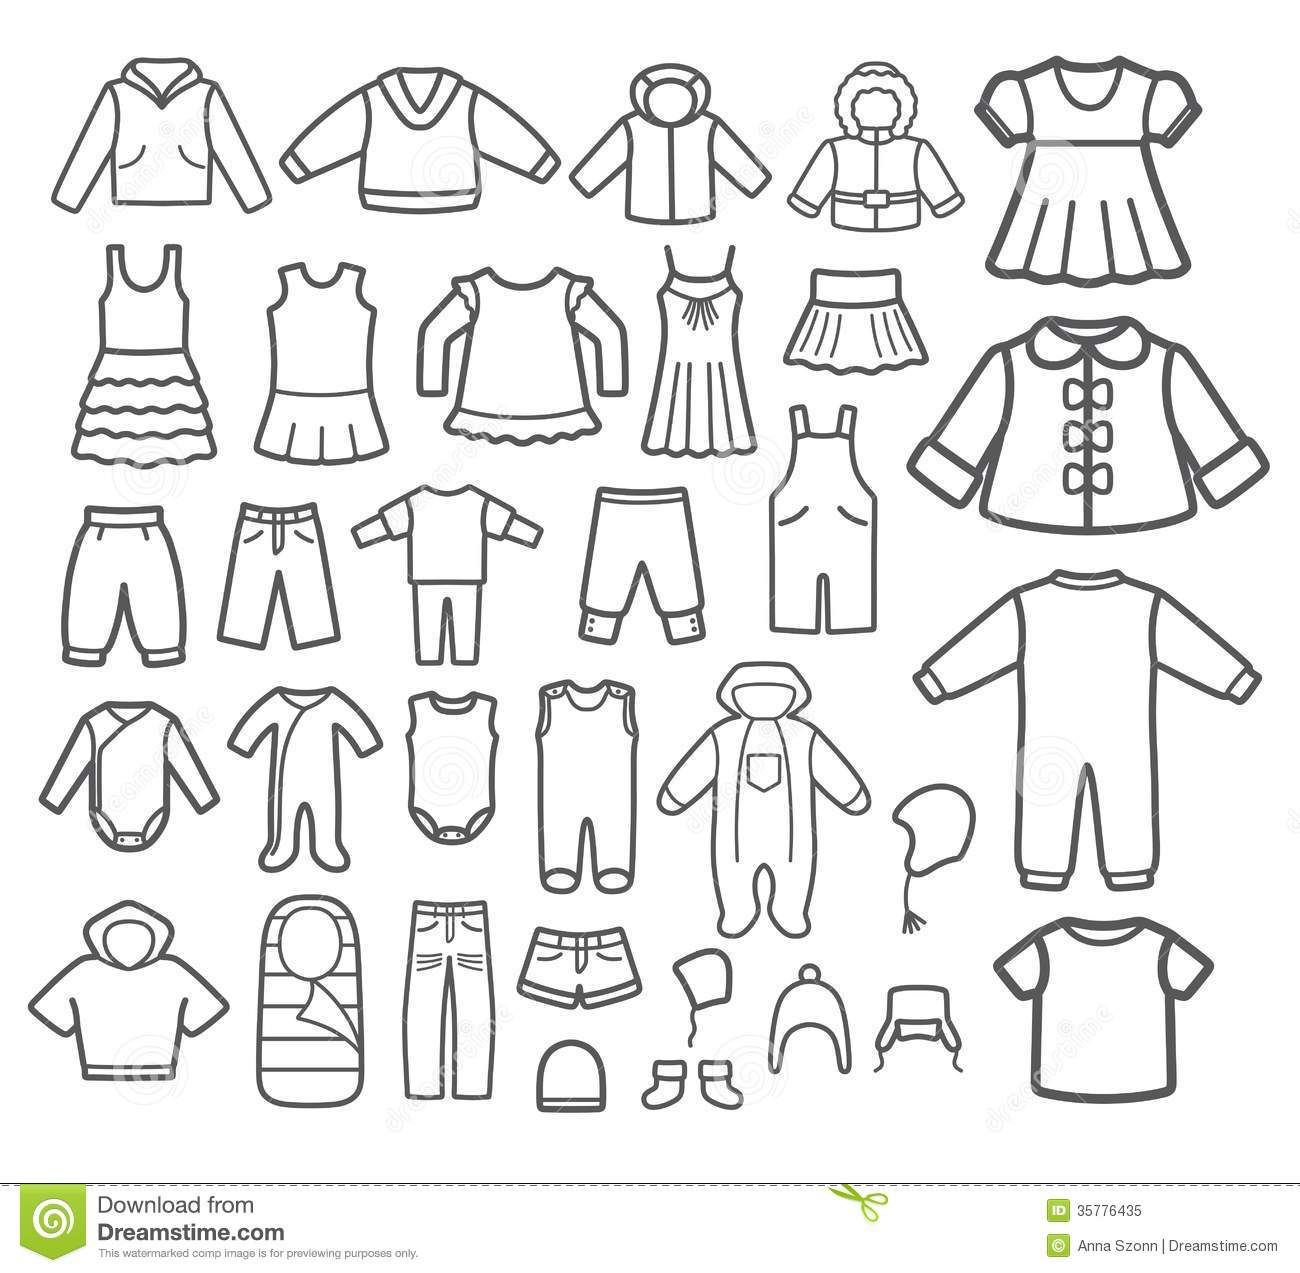 Clothes Clipart Black And